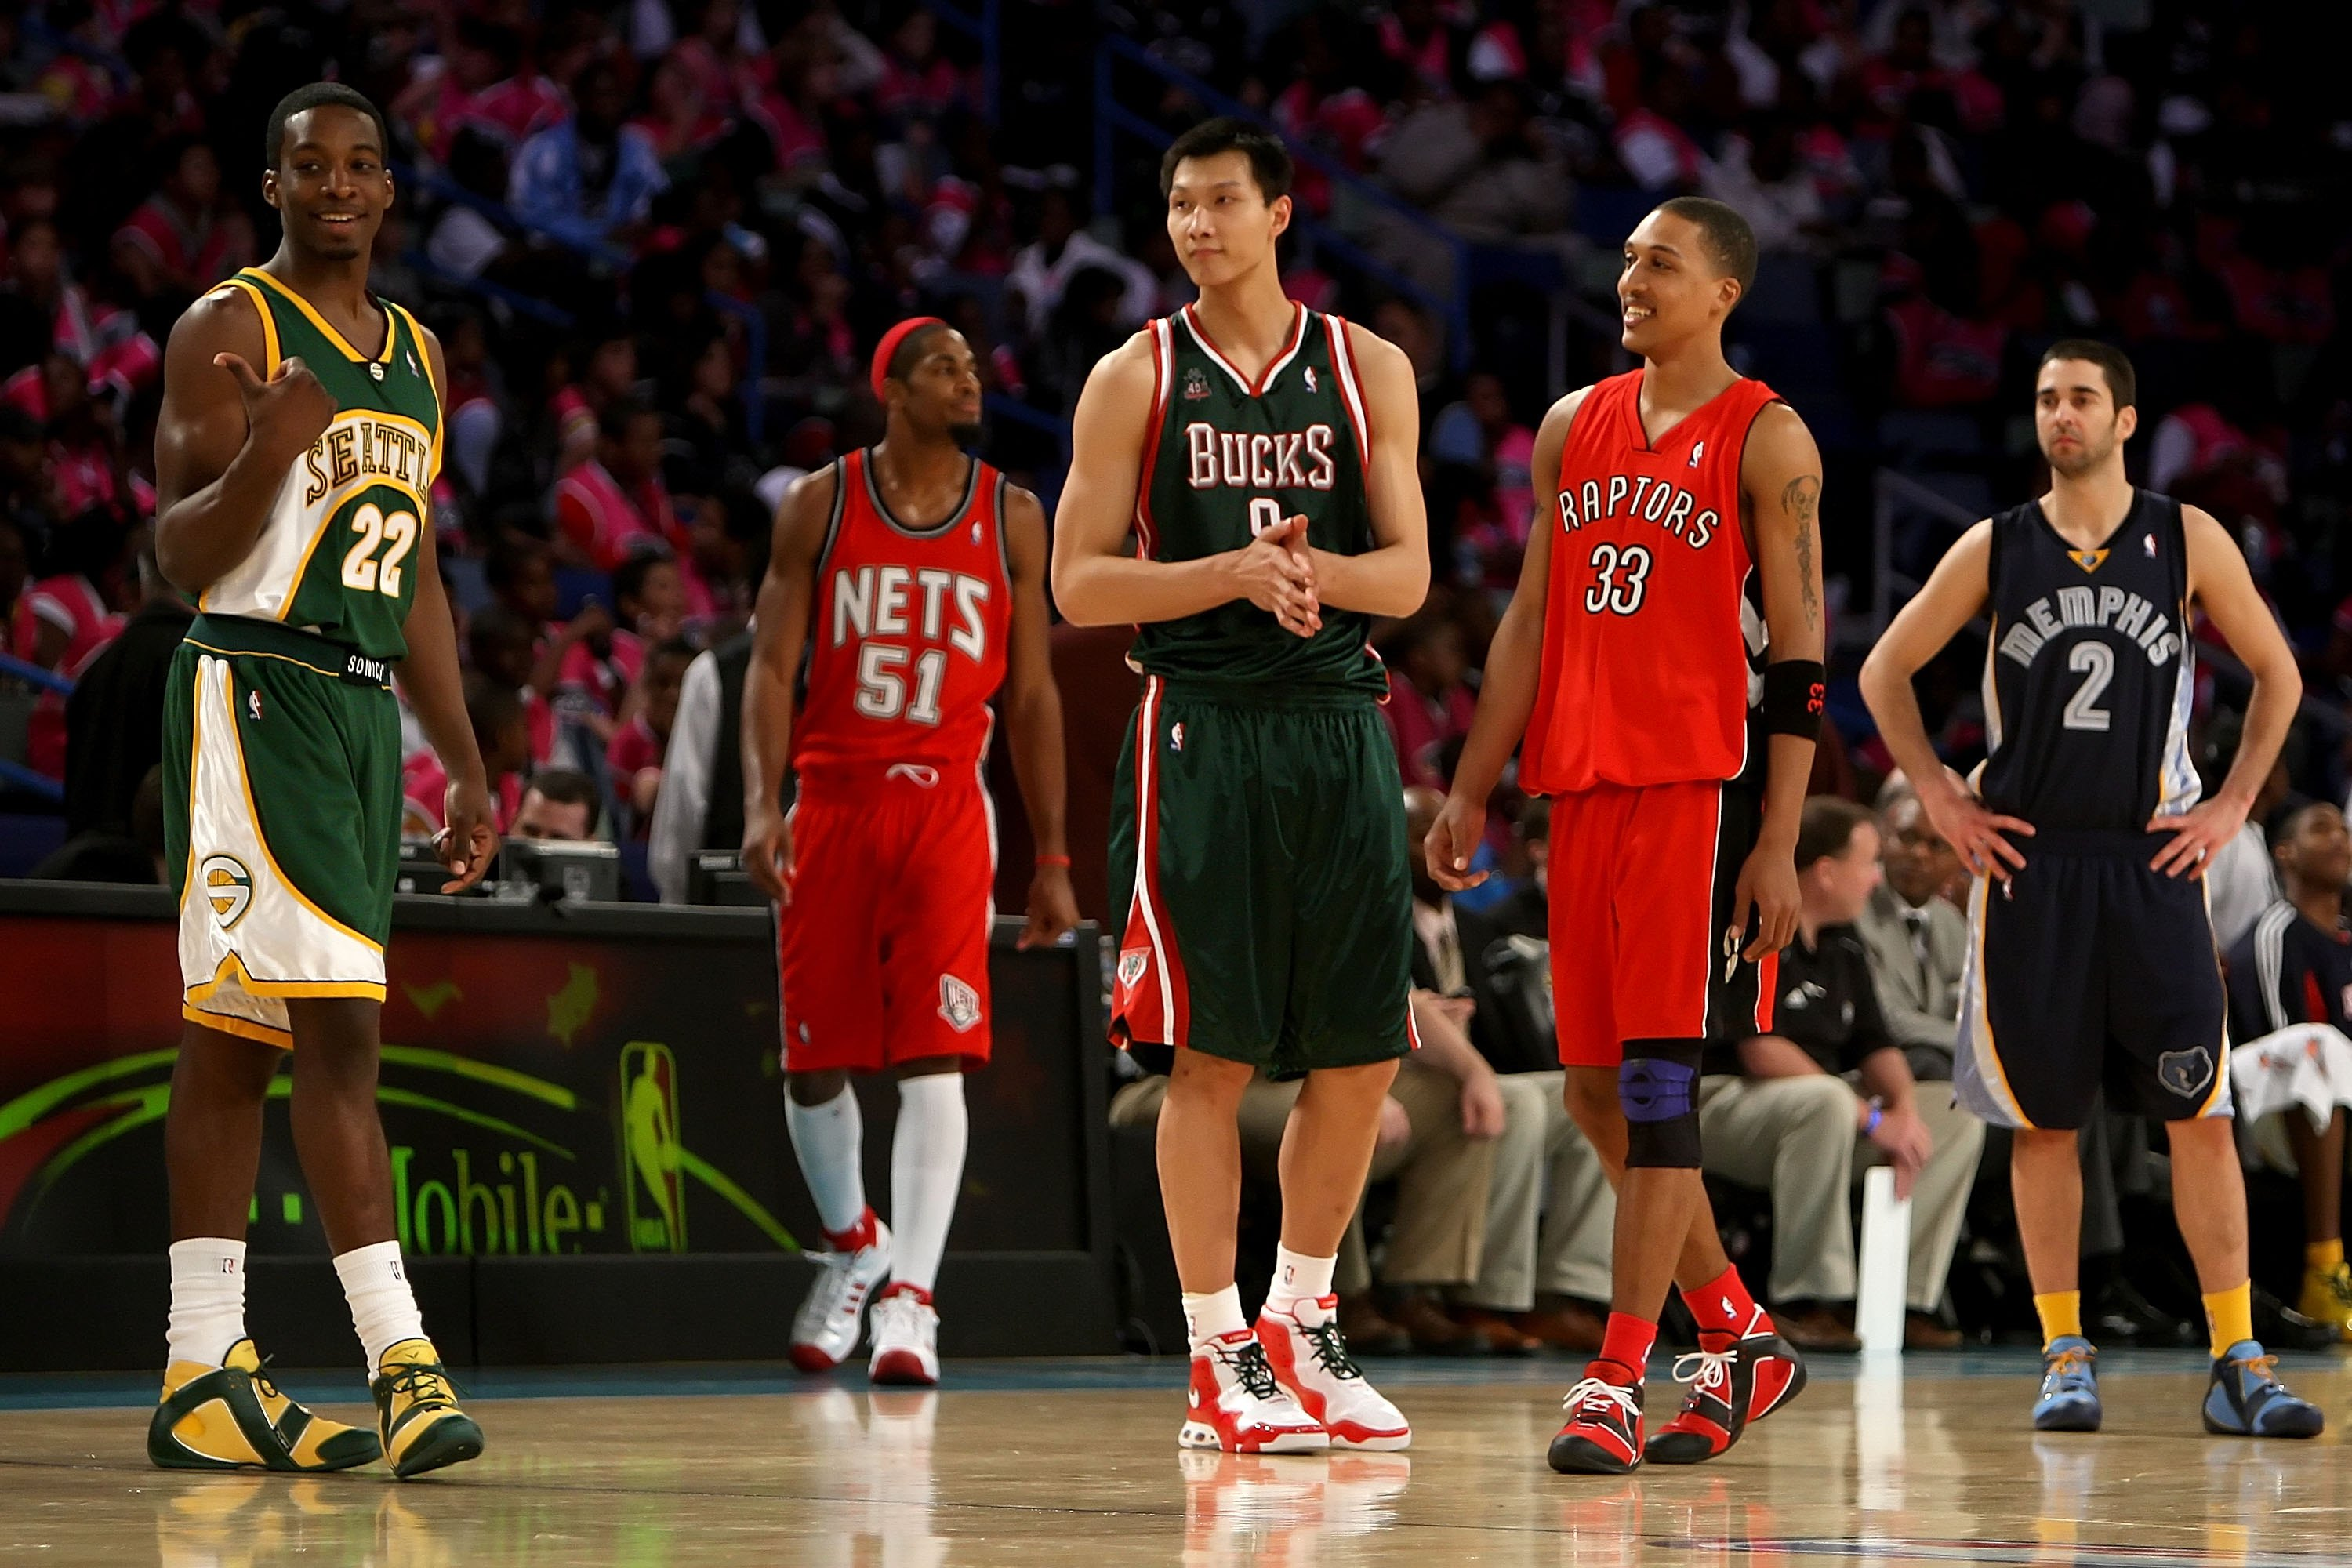 NEW ORLEANS - FEBRUARY 15:  (L-R) Jeff Green #22, Sean Williams #51, Yi Jianlian #9, Jamario Moon #33 and Juan Carlos Navarro #2 of the Rookie team stand on the court during the T-Mobile Rookie Challenge & Youth Jam part of 2008 NBA All-Star Weekend at th